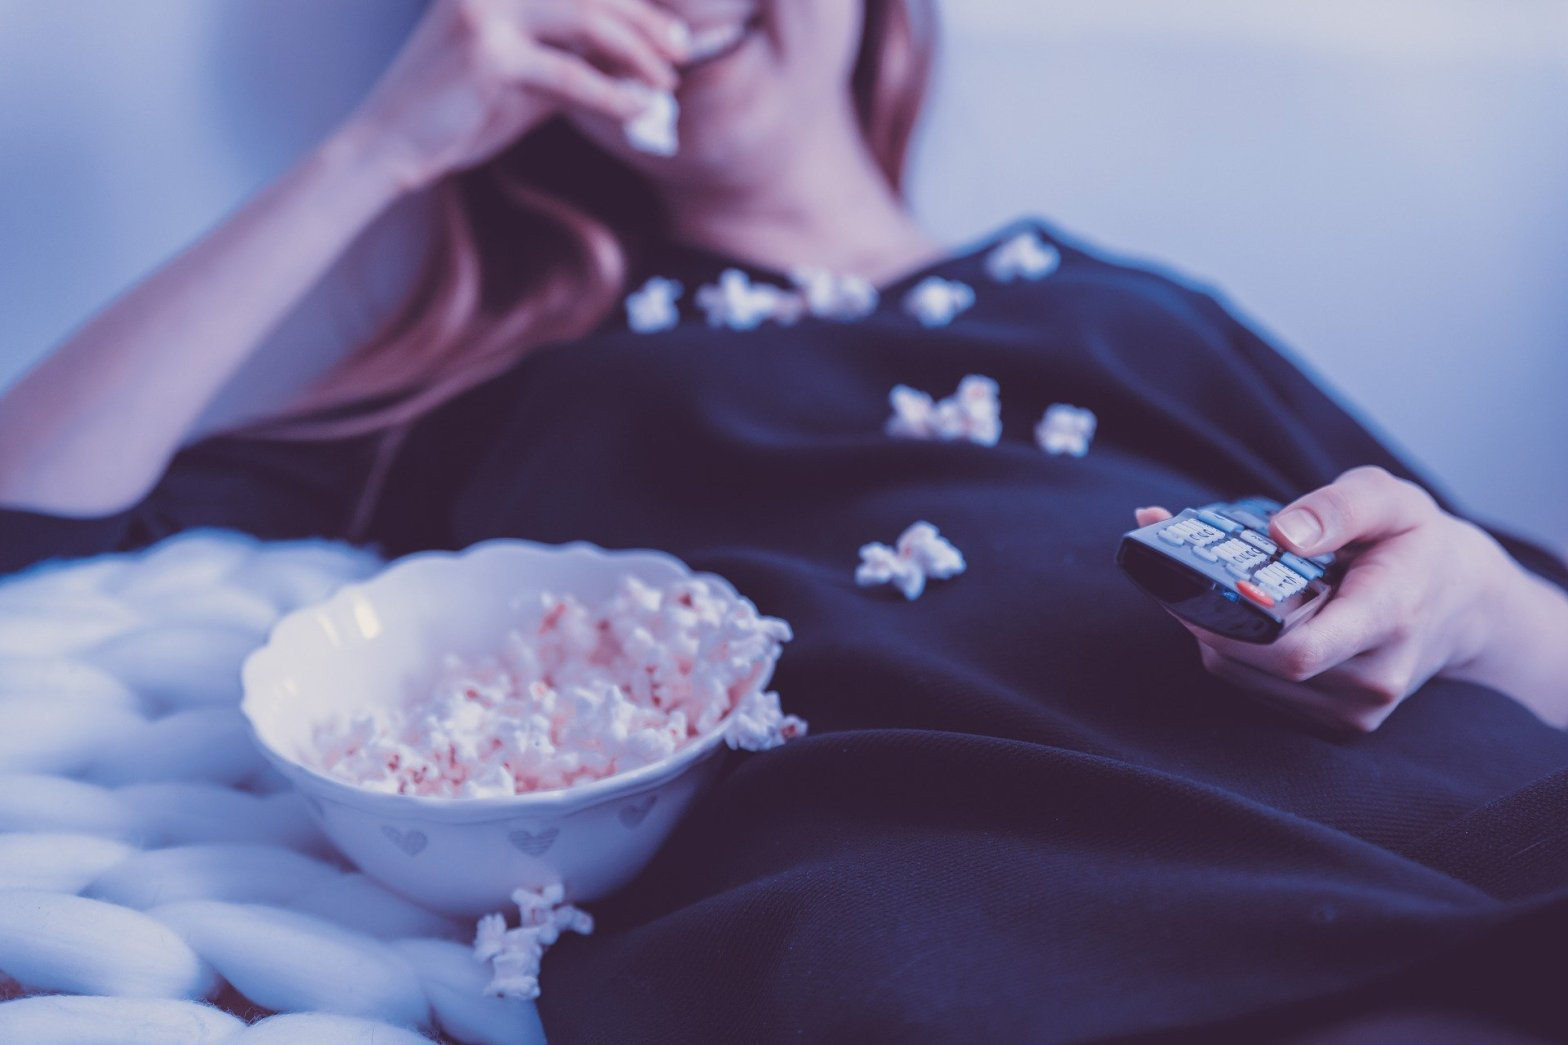 Woman watching television eating popcorn